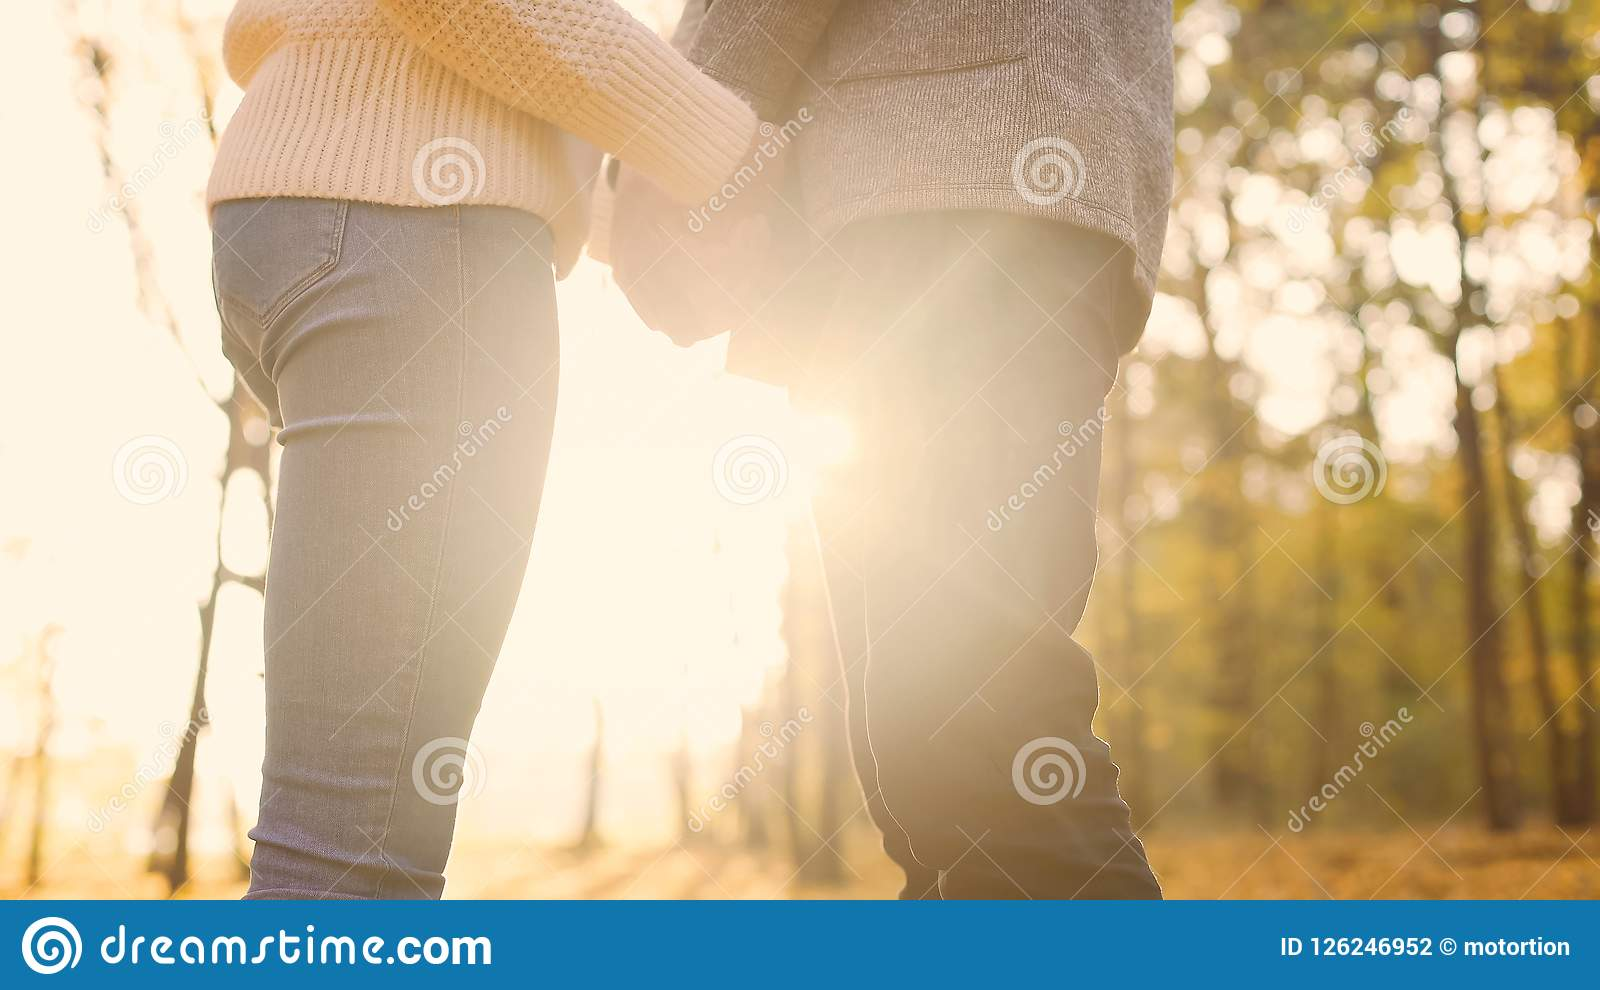 Couple of young lovers tenderly holding hands, enjoying date, warm autumn